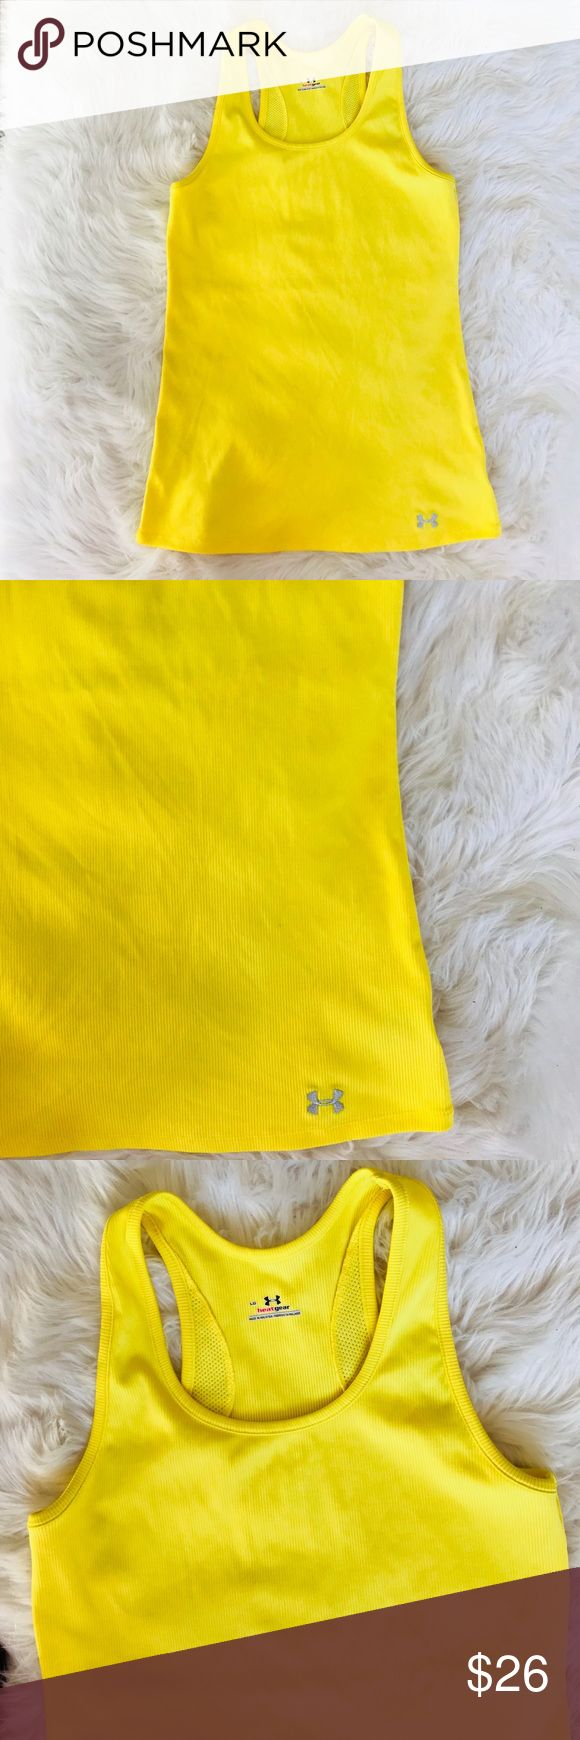 Under Armour Yellow Heat Gear Tank Top Under Armor Yellow Tank Top in excellent condition. Very good pre owned. Heat Gear.   Size L Under Armour Tops Tank Tops